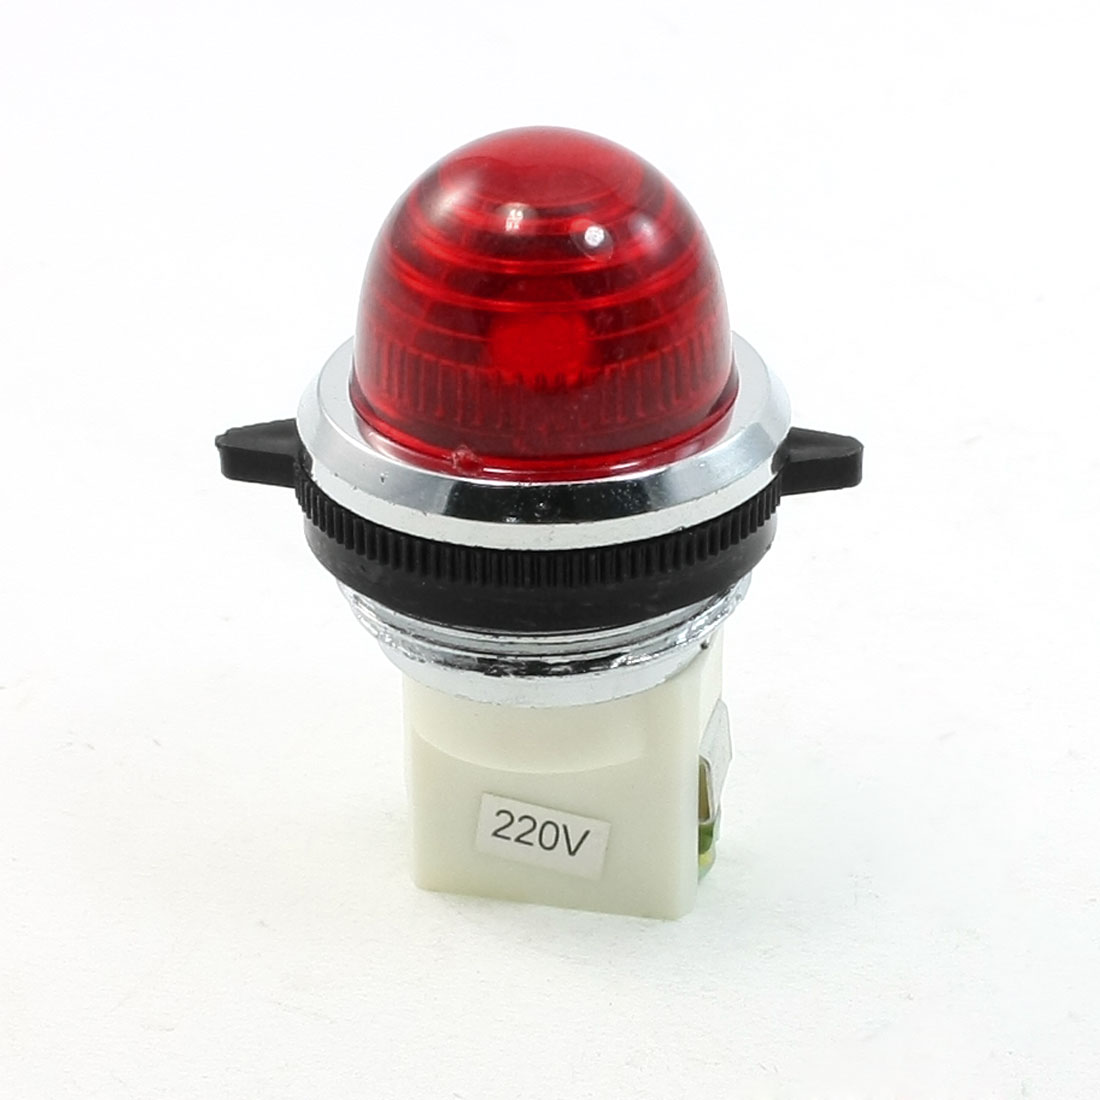 Pilot AC 220V 27mm Thread Mounted Red Light Signal Indicator Lamp